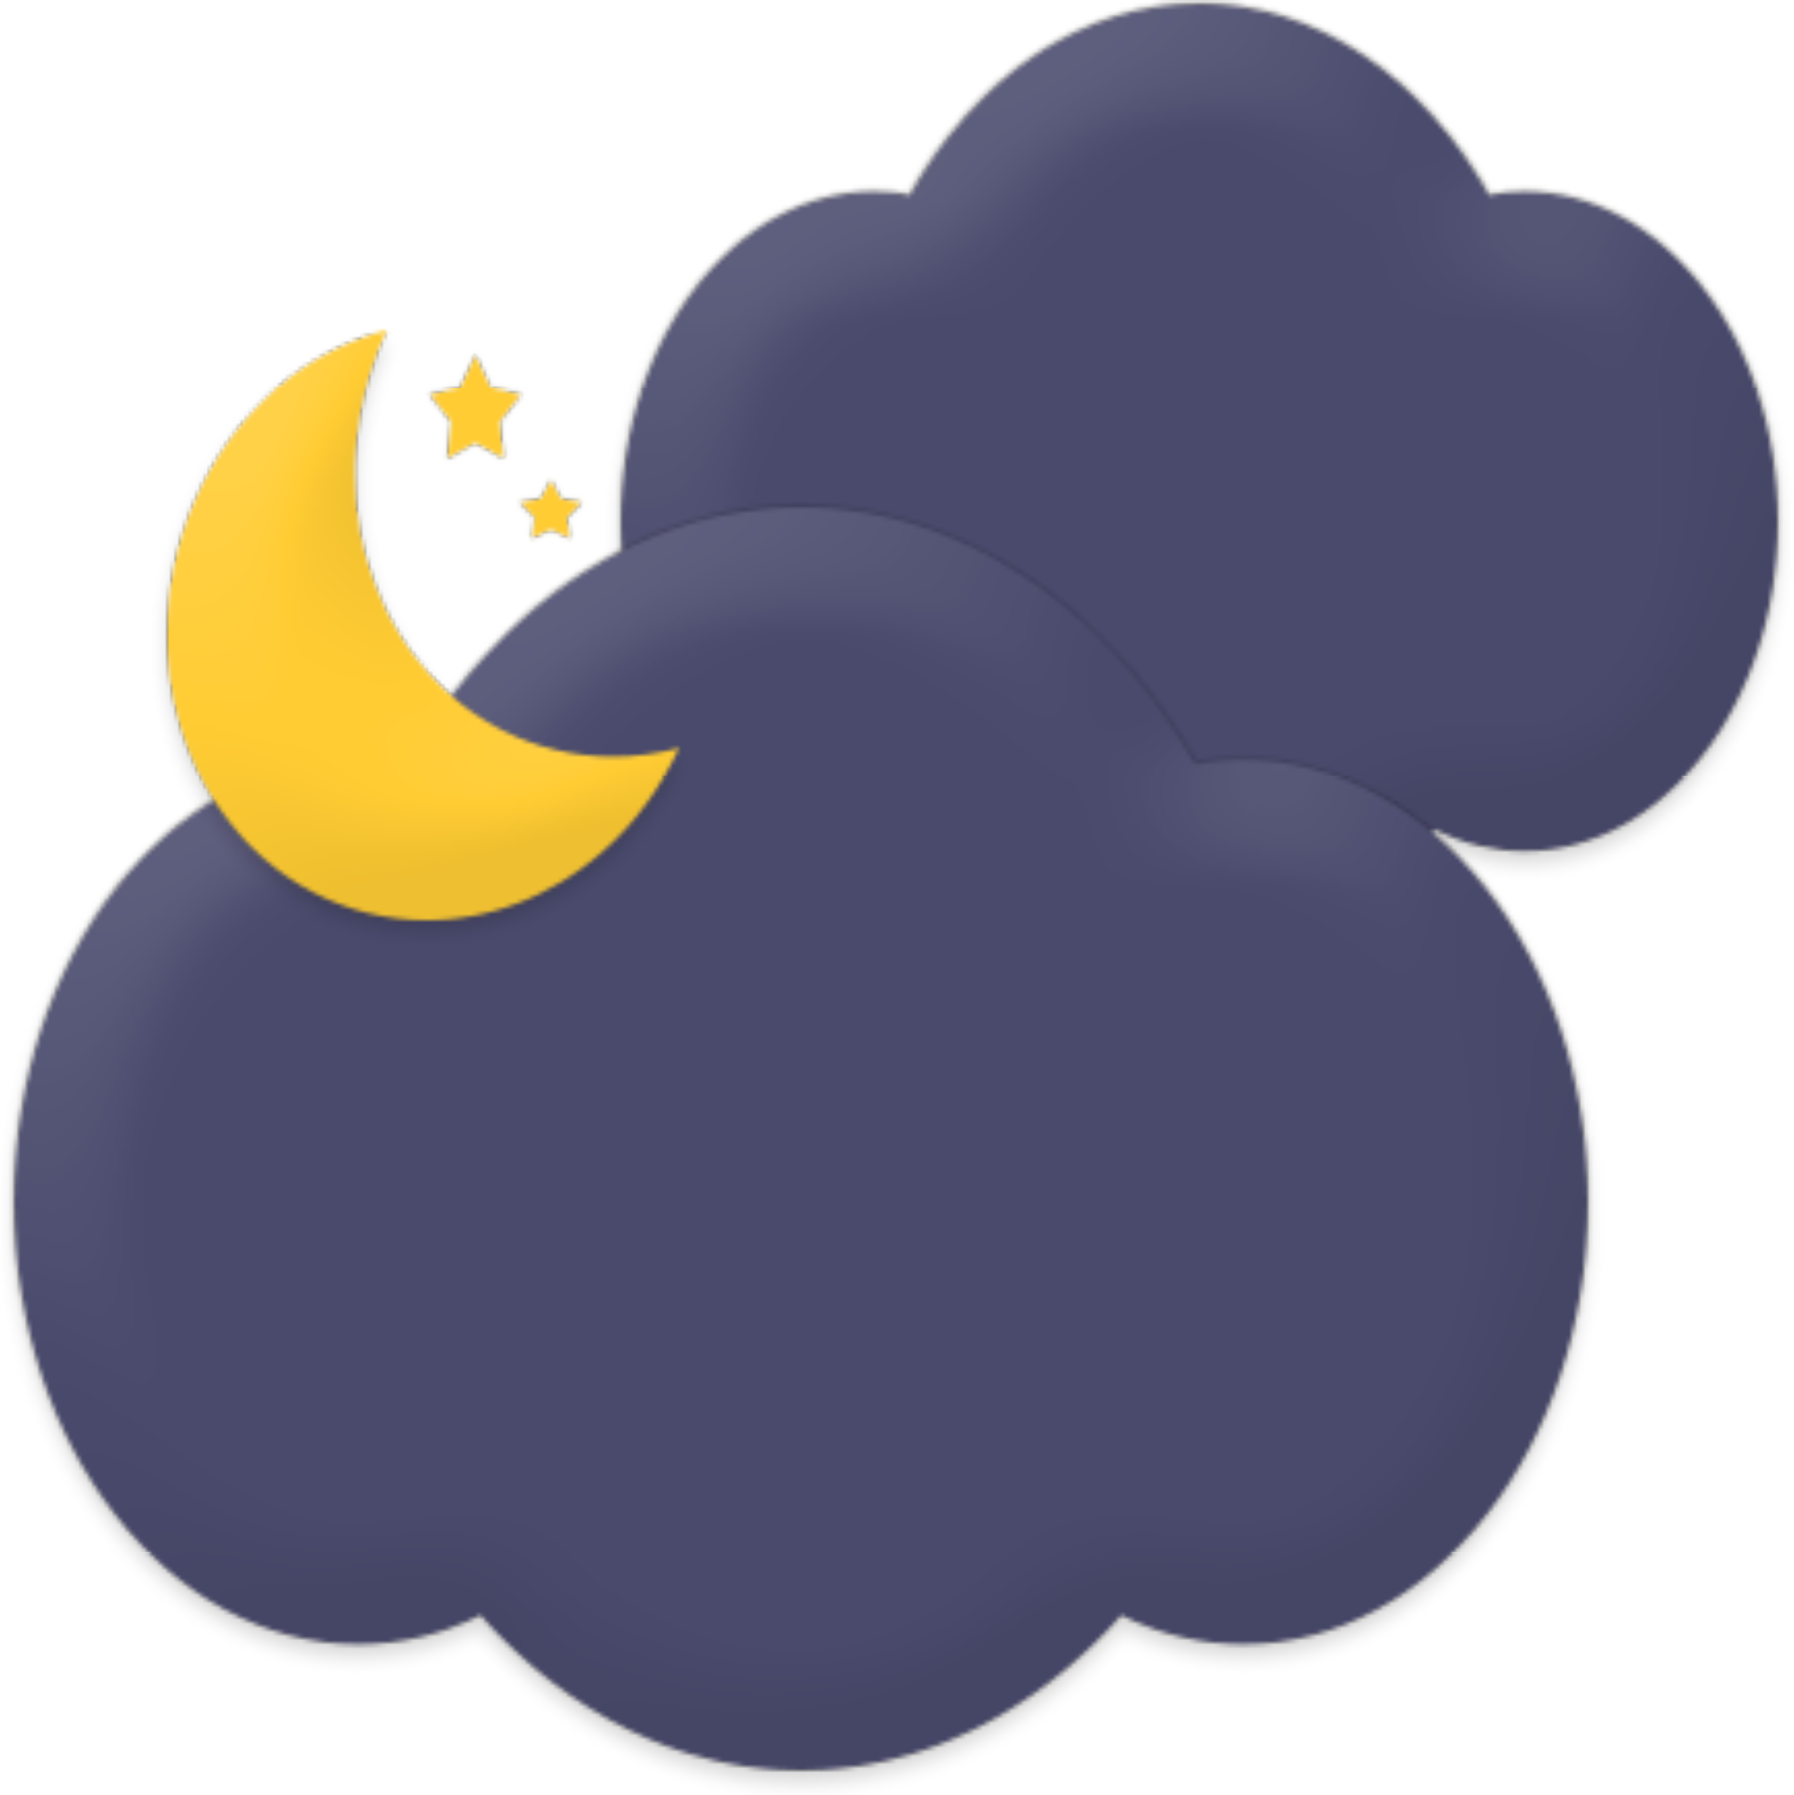 Sun clipart for weather forecast graphic library download York, United Kingdom Weather Forecast - Holiday Weather graphic library download